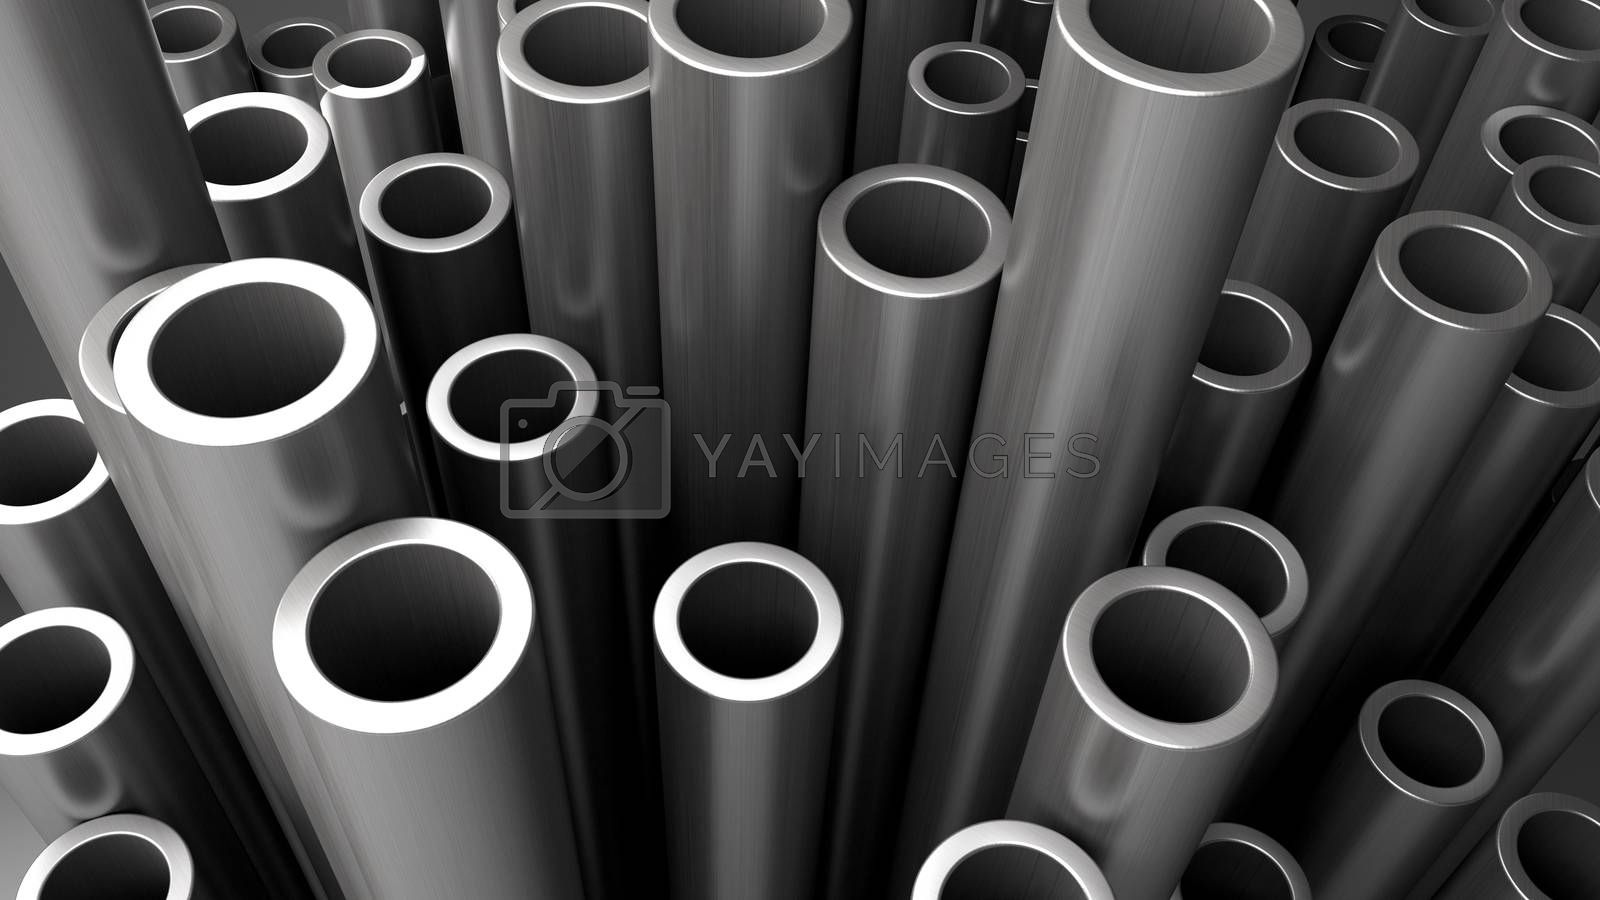 Royalty free image of Stack of steel pipes. by klss